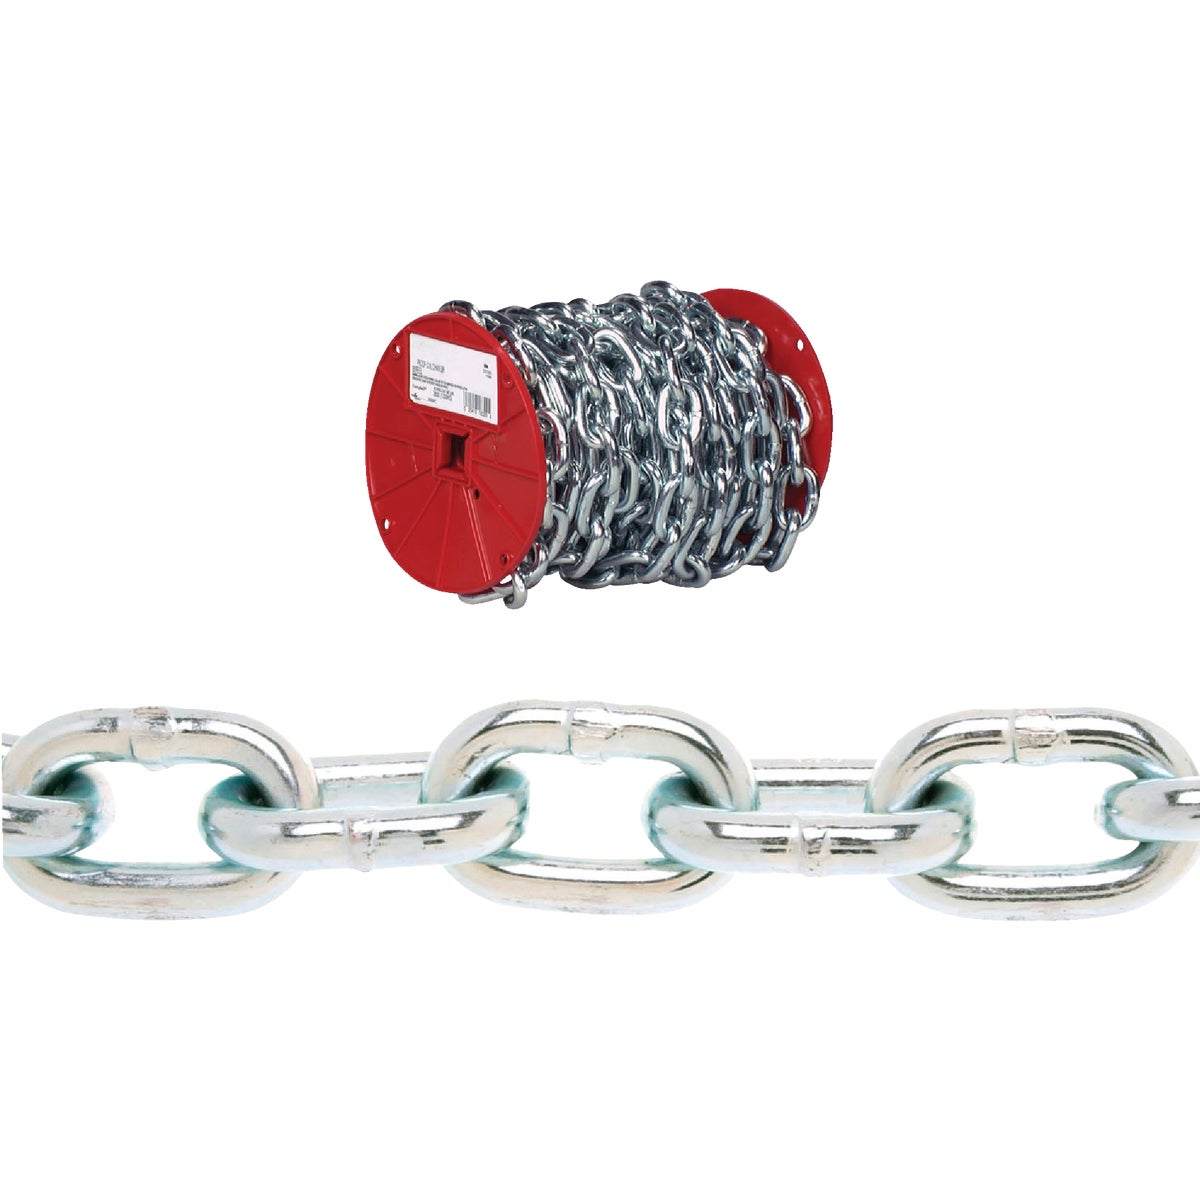 "65' 1/4"" G30 CHAIN - 0722127 by Cooper Campbell Apex"